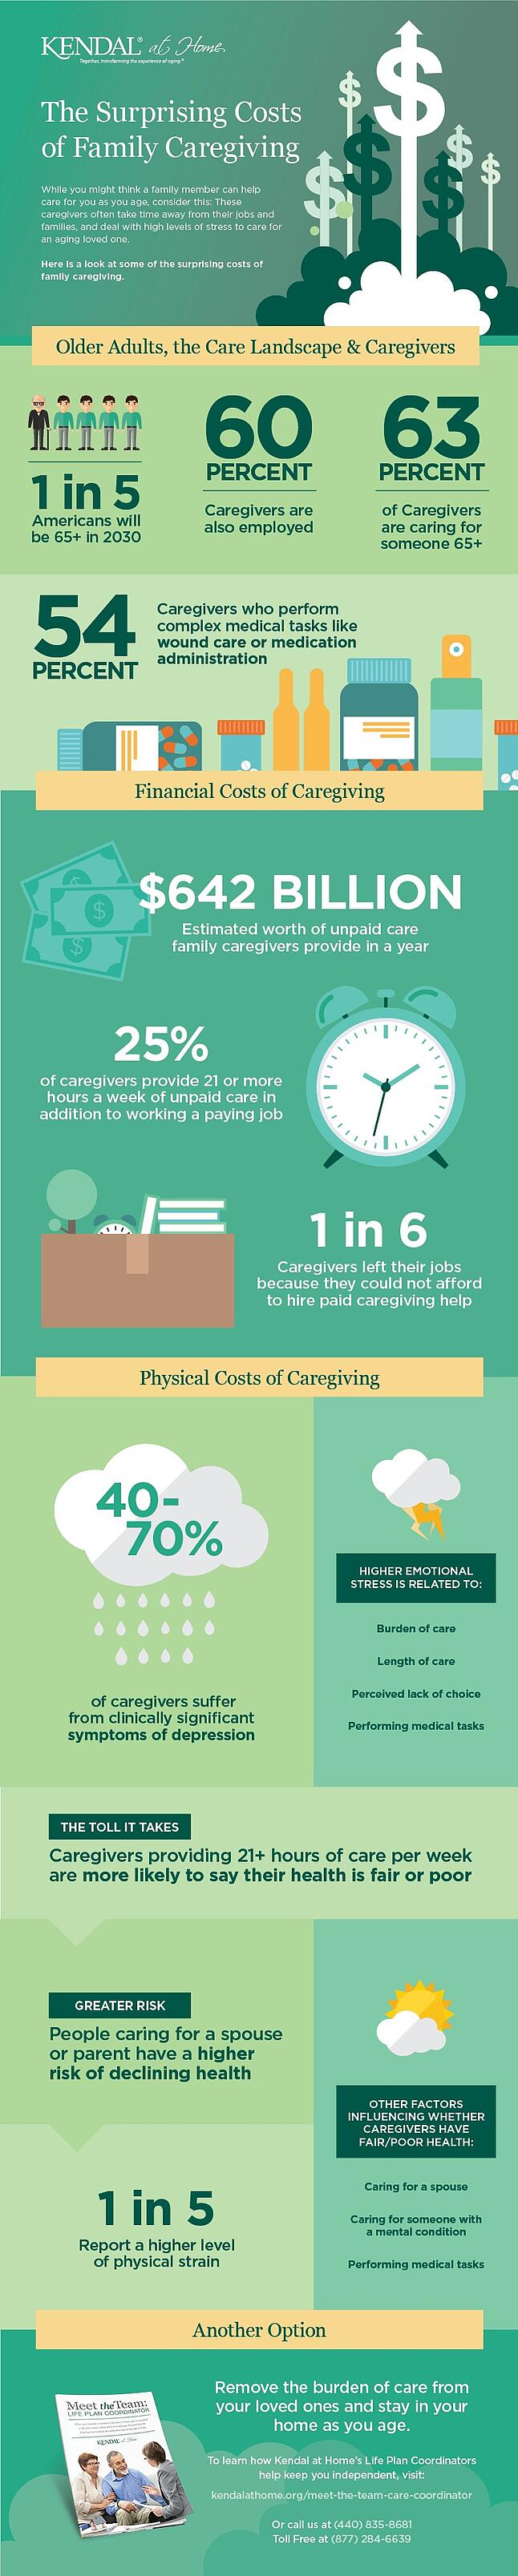 suprising-cost-family-caregiving-blog.jpg